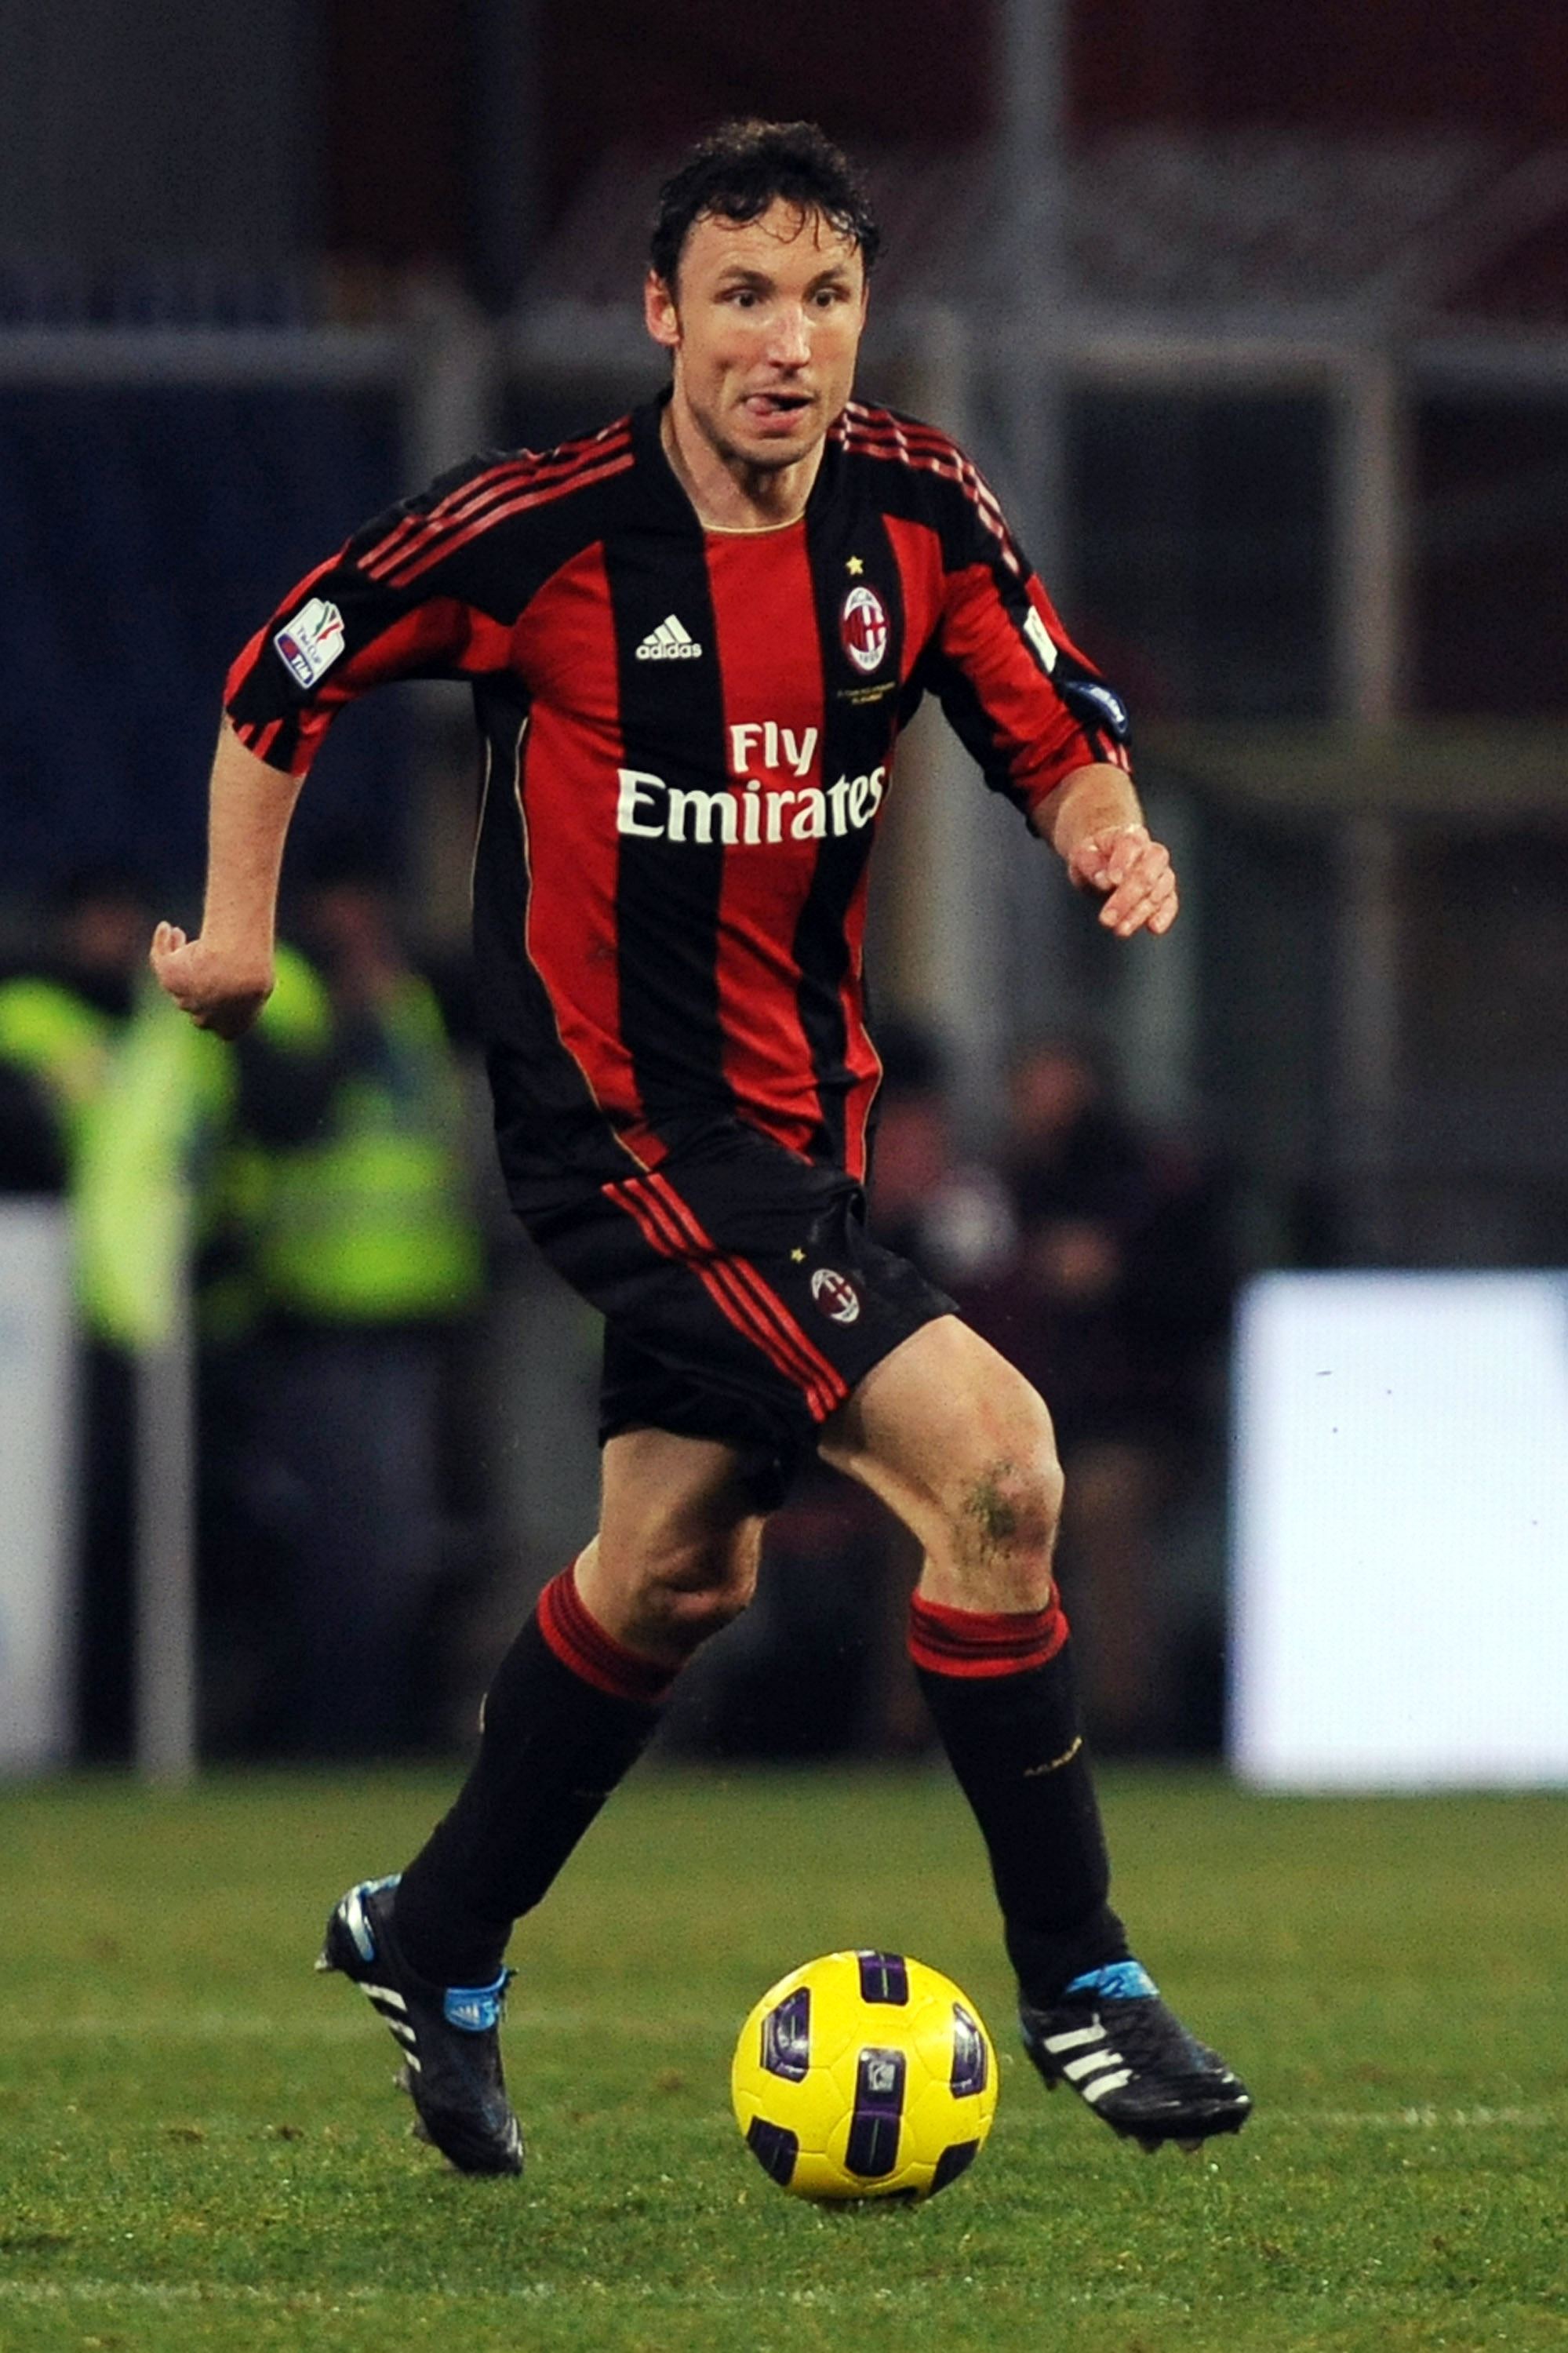 GENOA, ITALY - JANUARY 26:  Mark van Bommel of AC Milan in action during the Tim Cup match between UC Sampdoria and AC Milan at Luigi Ferraris Stadium on January 26, 2011 in Genoa, Italy.  (Photo by Valerio Pennicino/Getty Images)